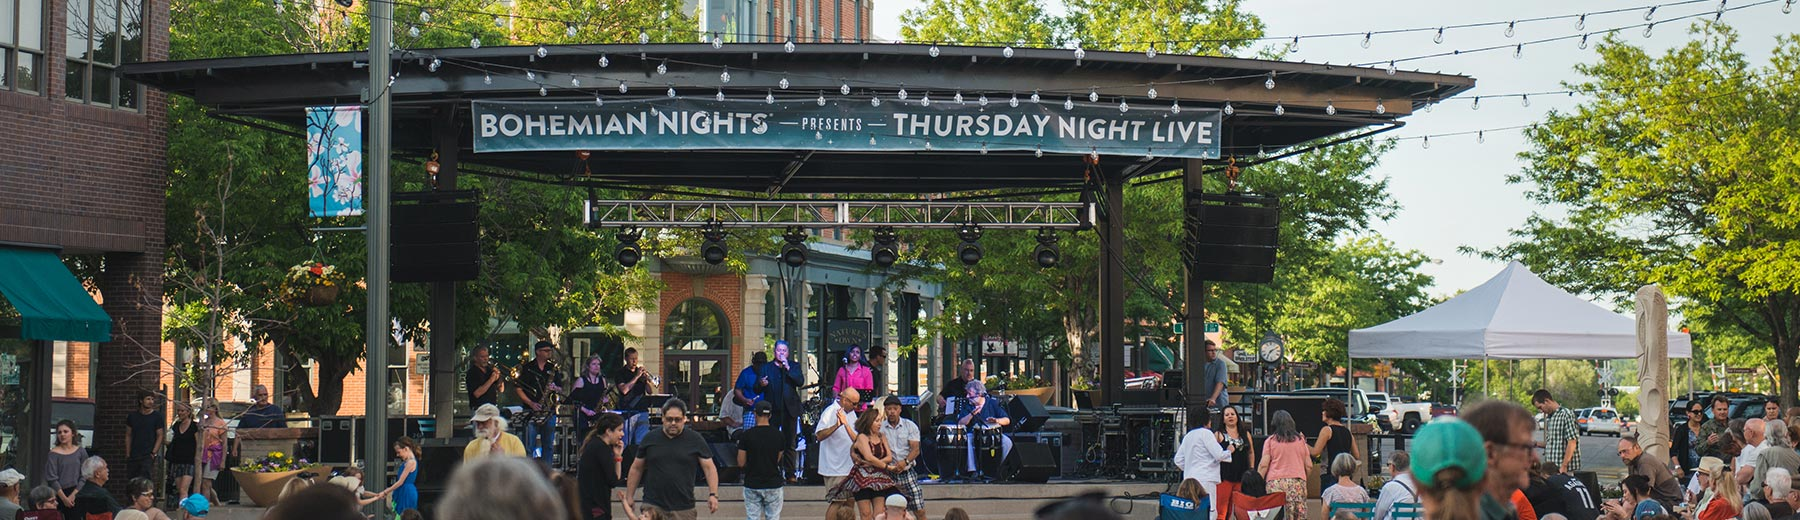 Thursday Night Live Lineup - Bohemian Nights Presents Thursday Night Live